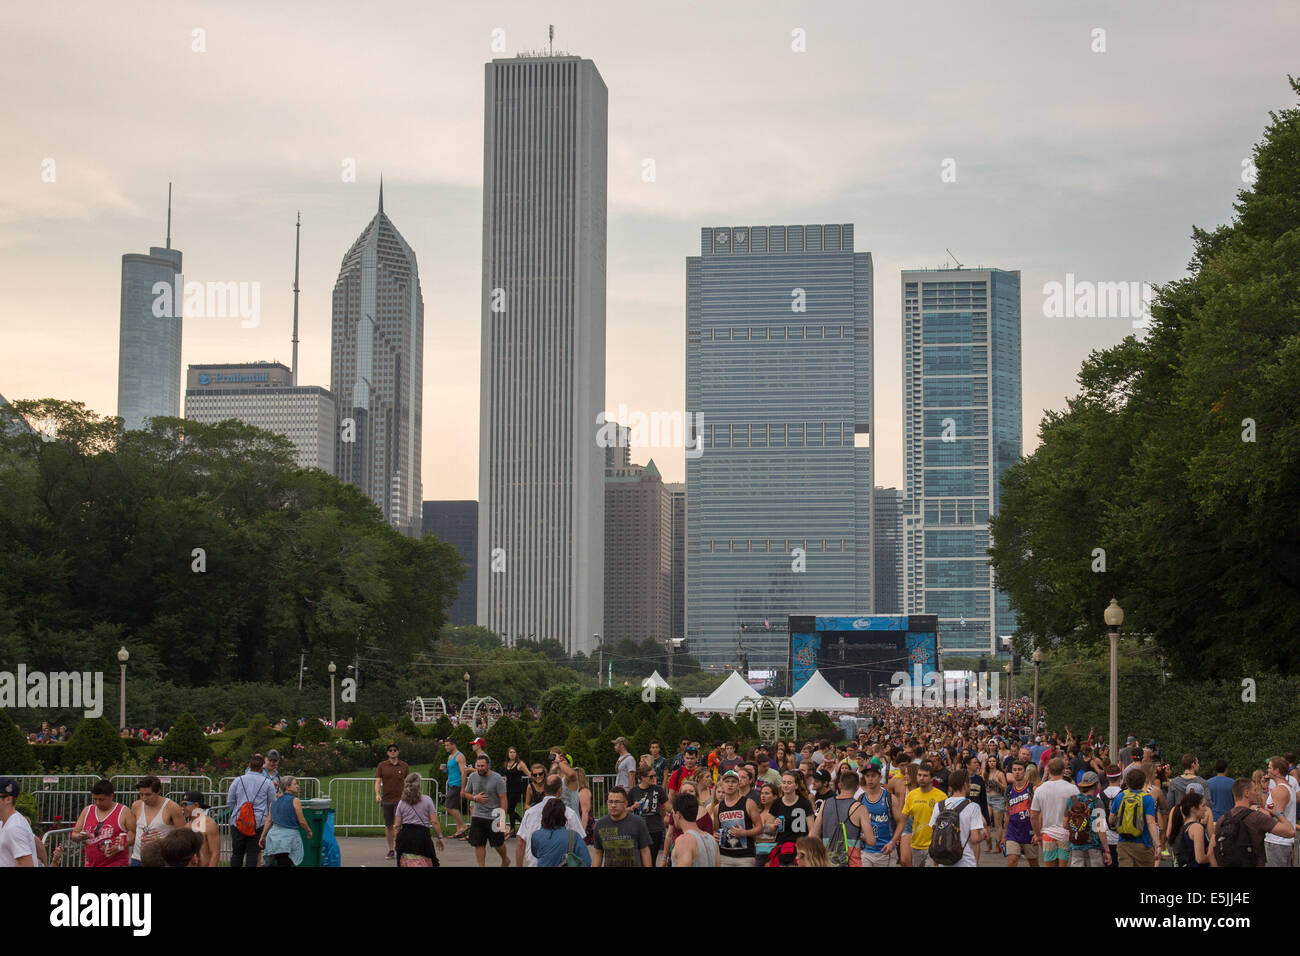 Chicago, Illinois, USA. 1st Aug, 2014. Fans swarm the north end of Grant Park to see Lorde perform at 2014 Lollapalooza - Stock Image